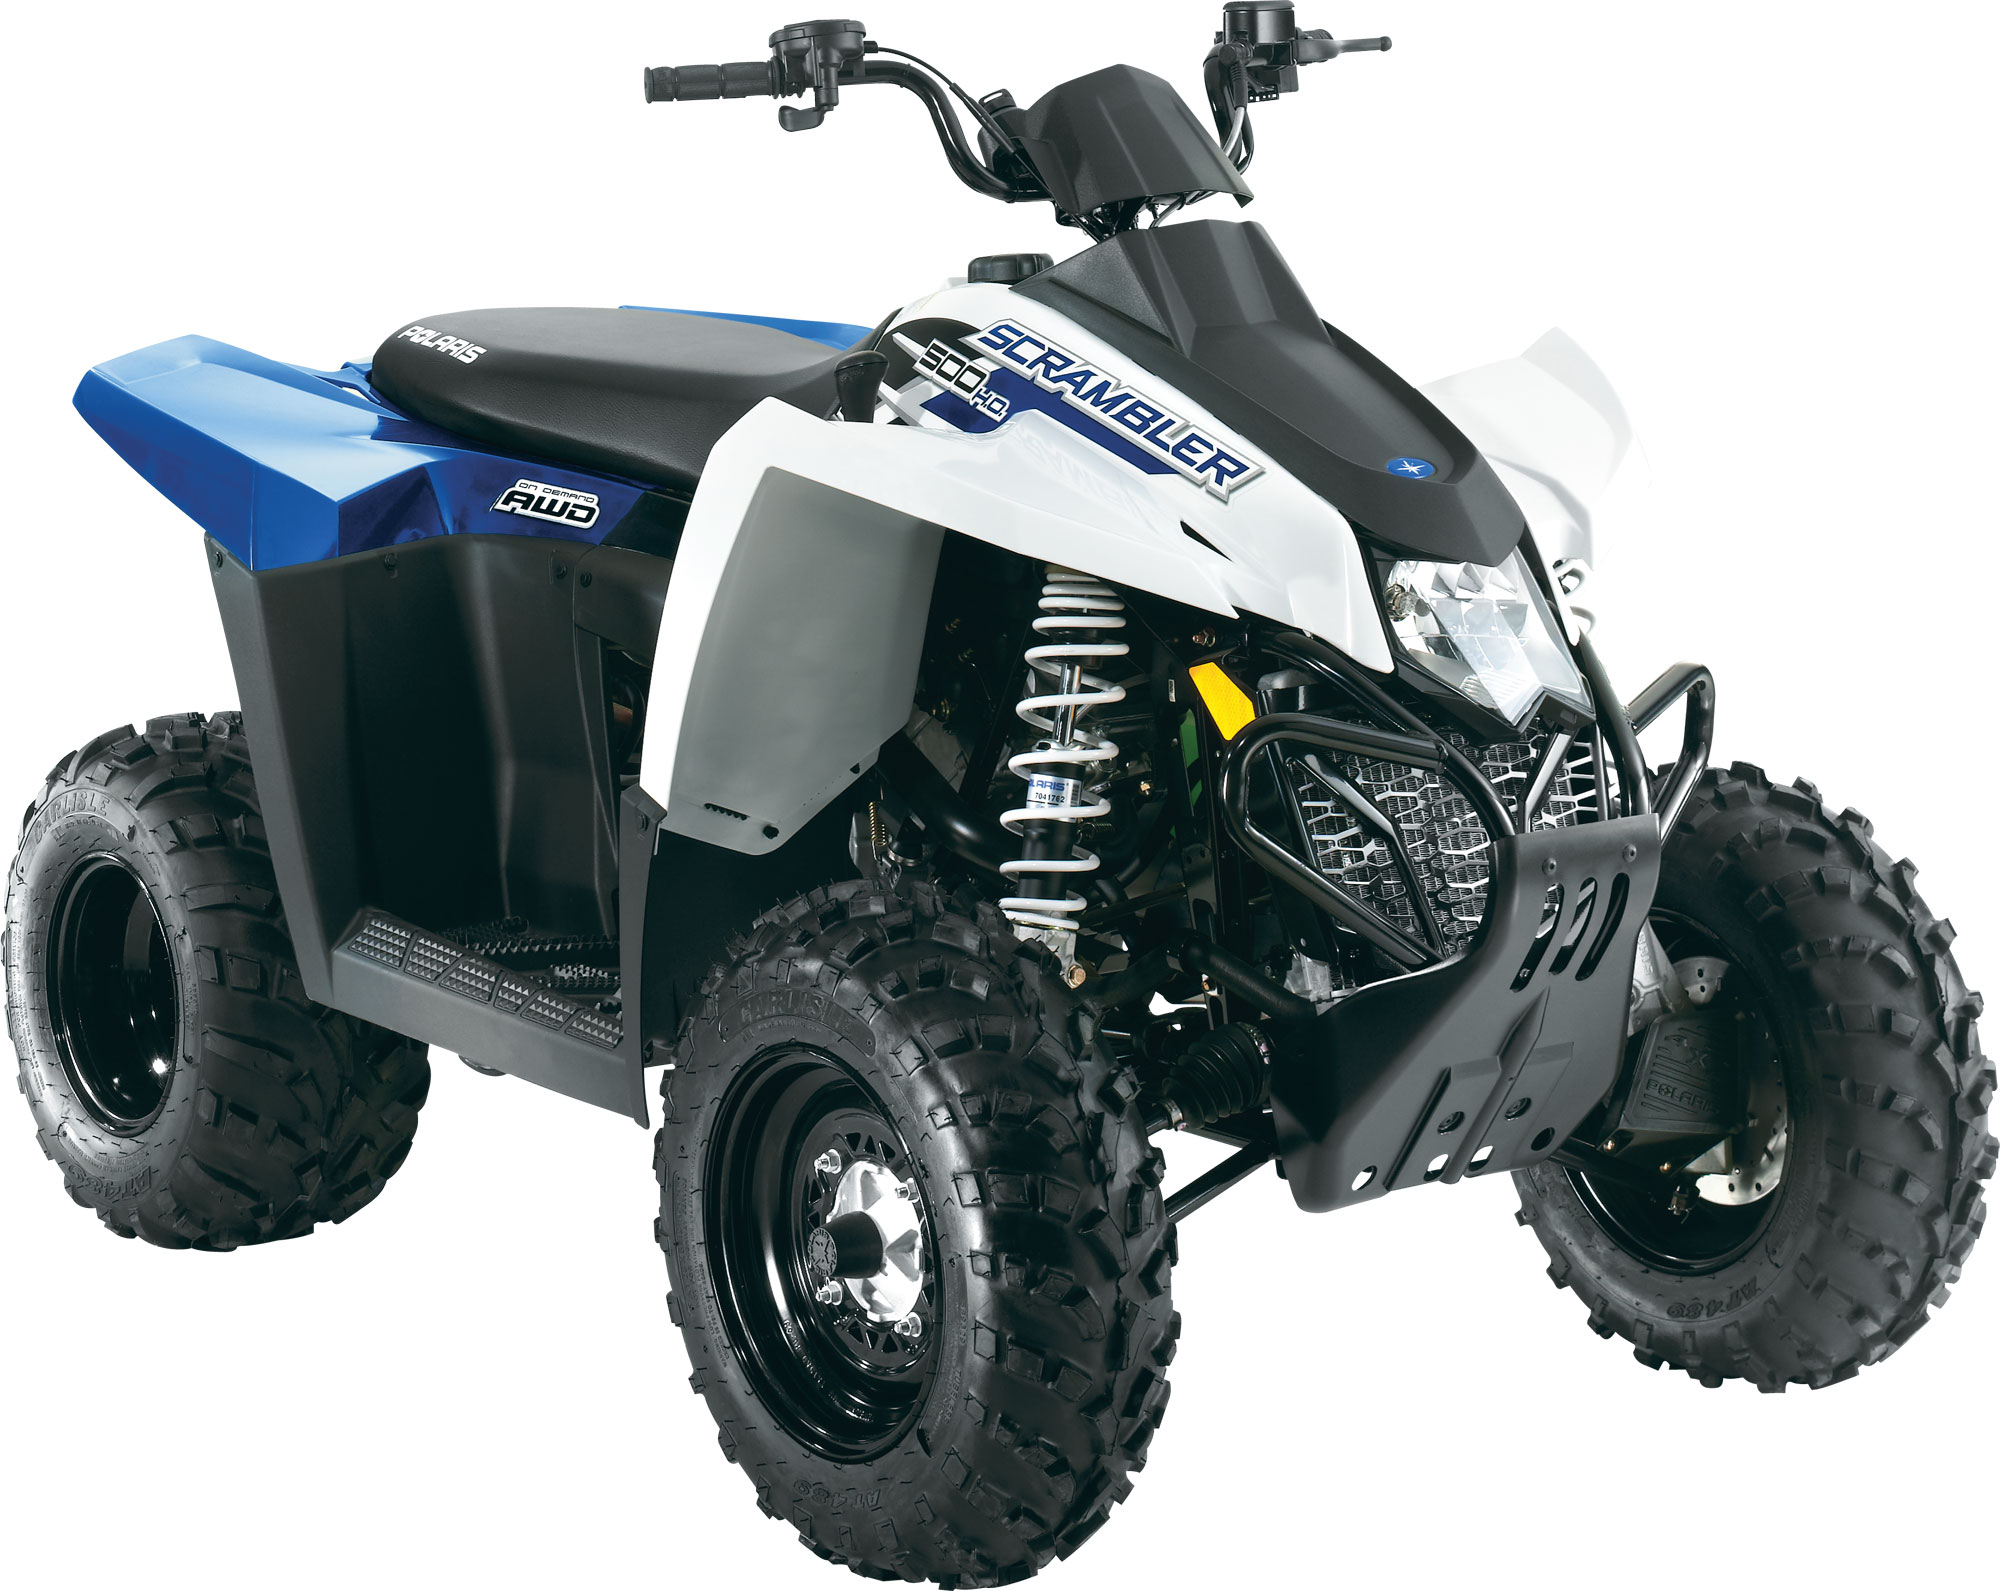 Polaris Scrambler 500 2008 images #121287